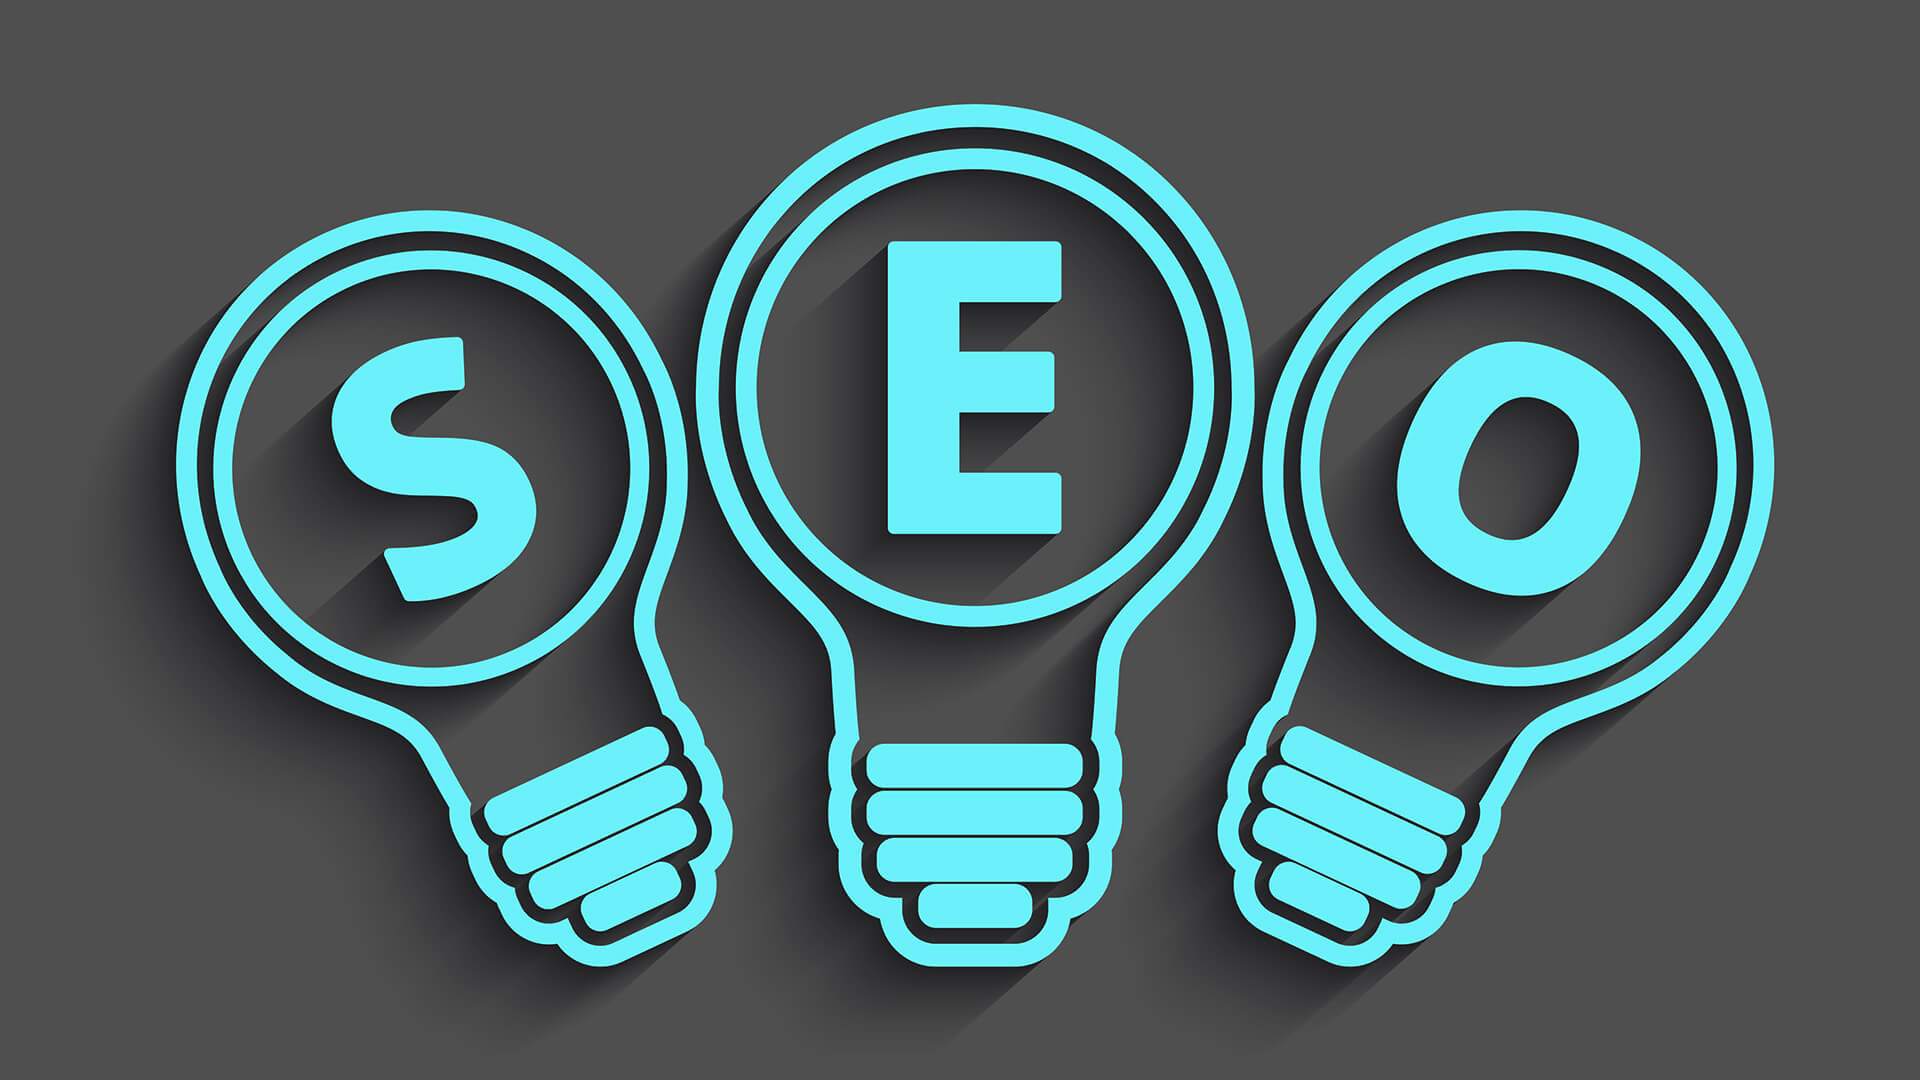 SEO and SMEs: Q&A with Chris Rodgers, Founder and CEO of Colorado SEO Pros